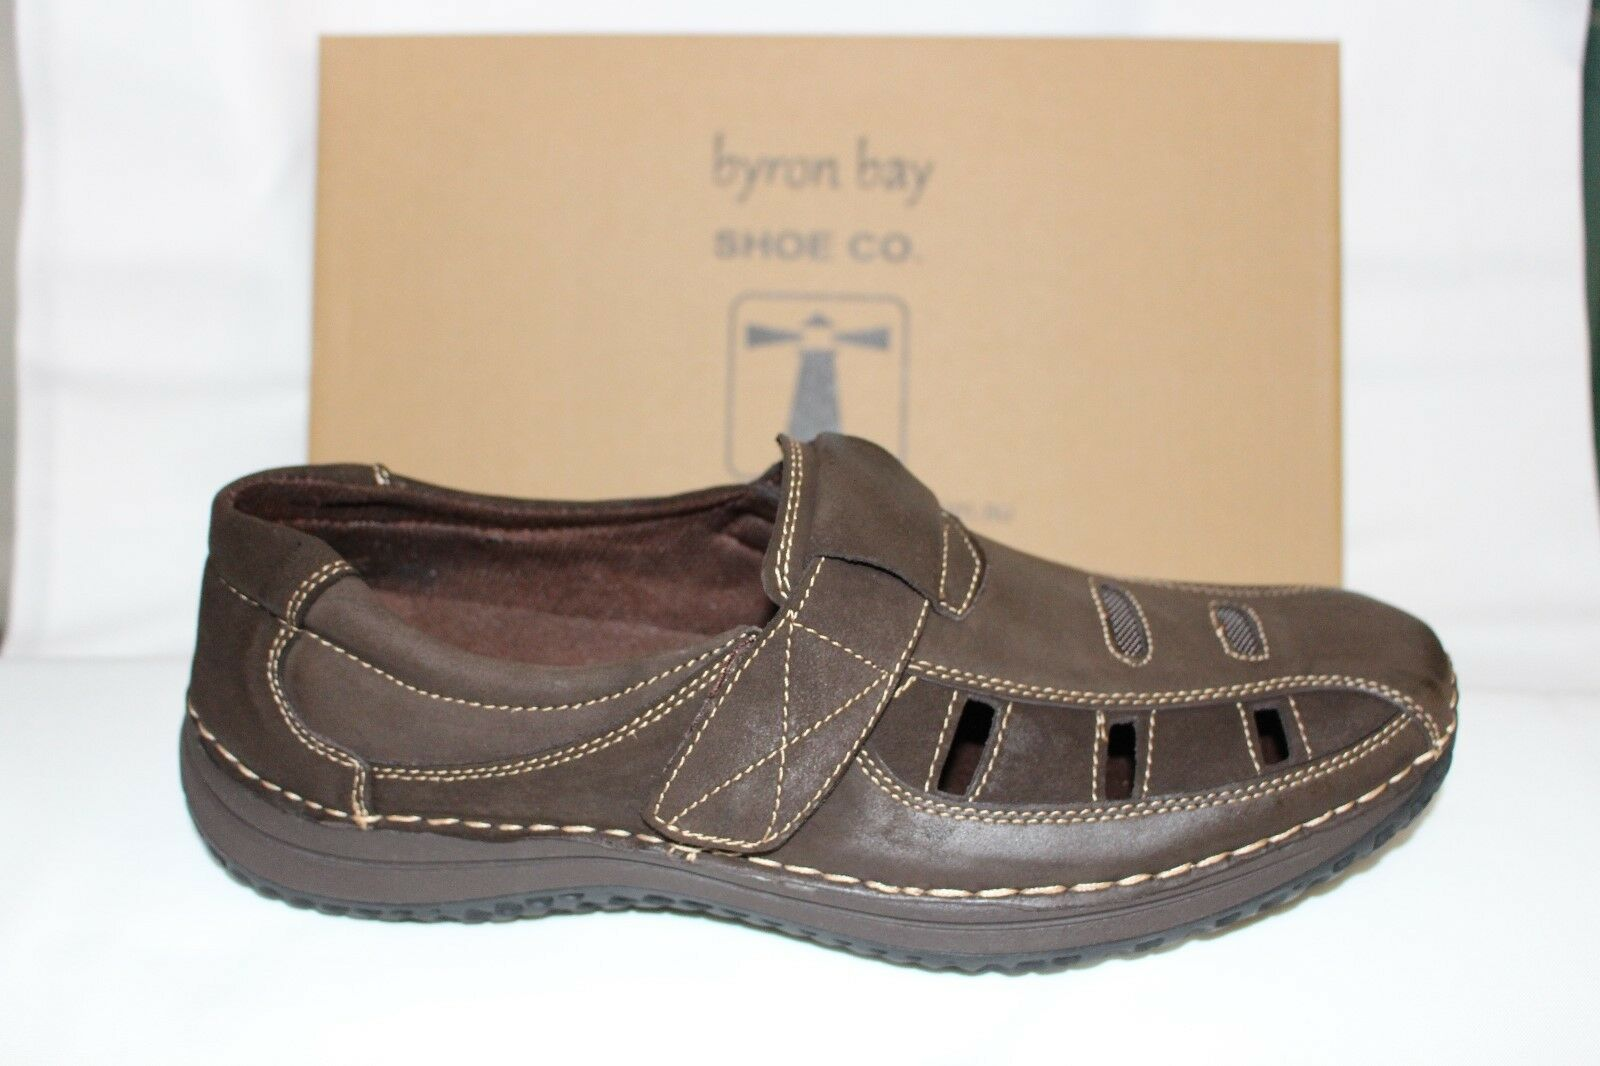 MENS SHOES FOOTWEAR - Byron Bay Suffolk Sandal shoes chocolate